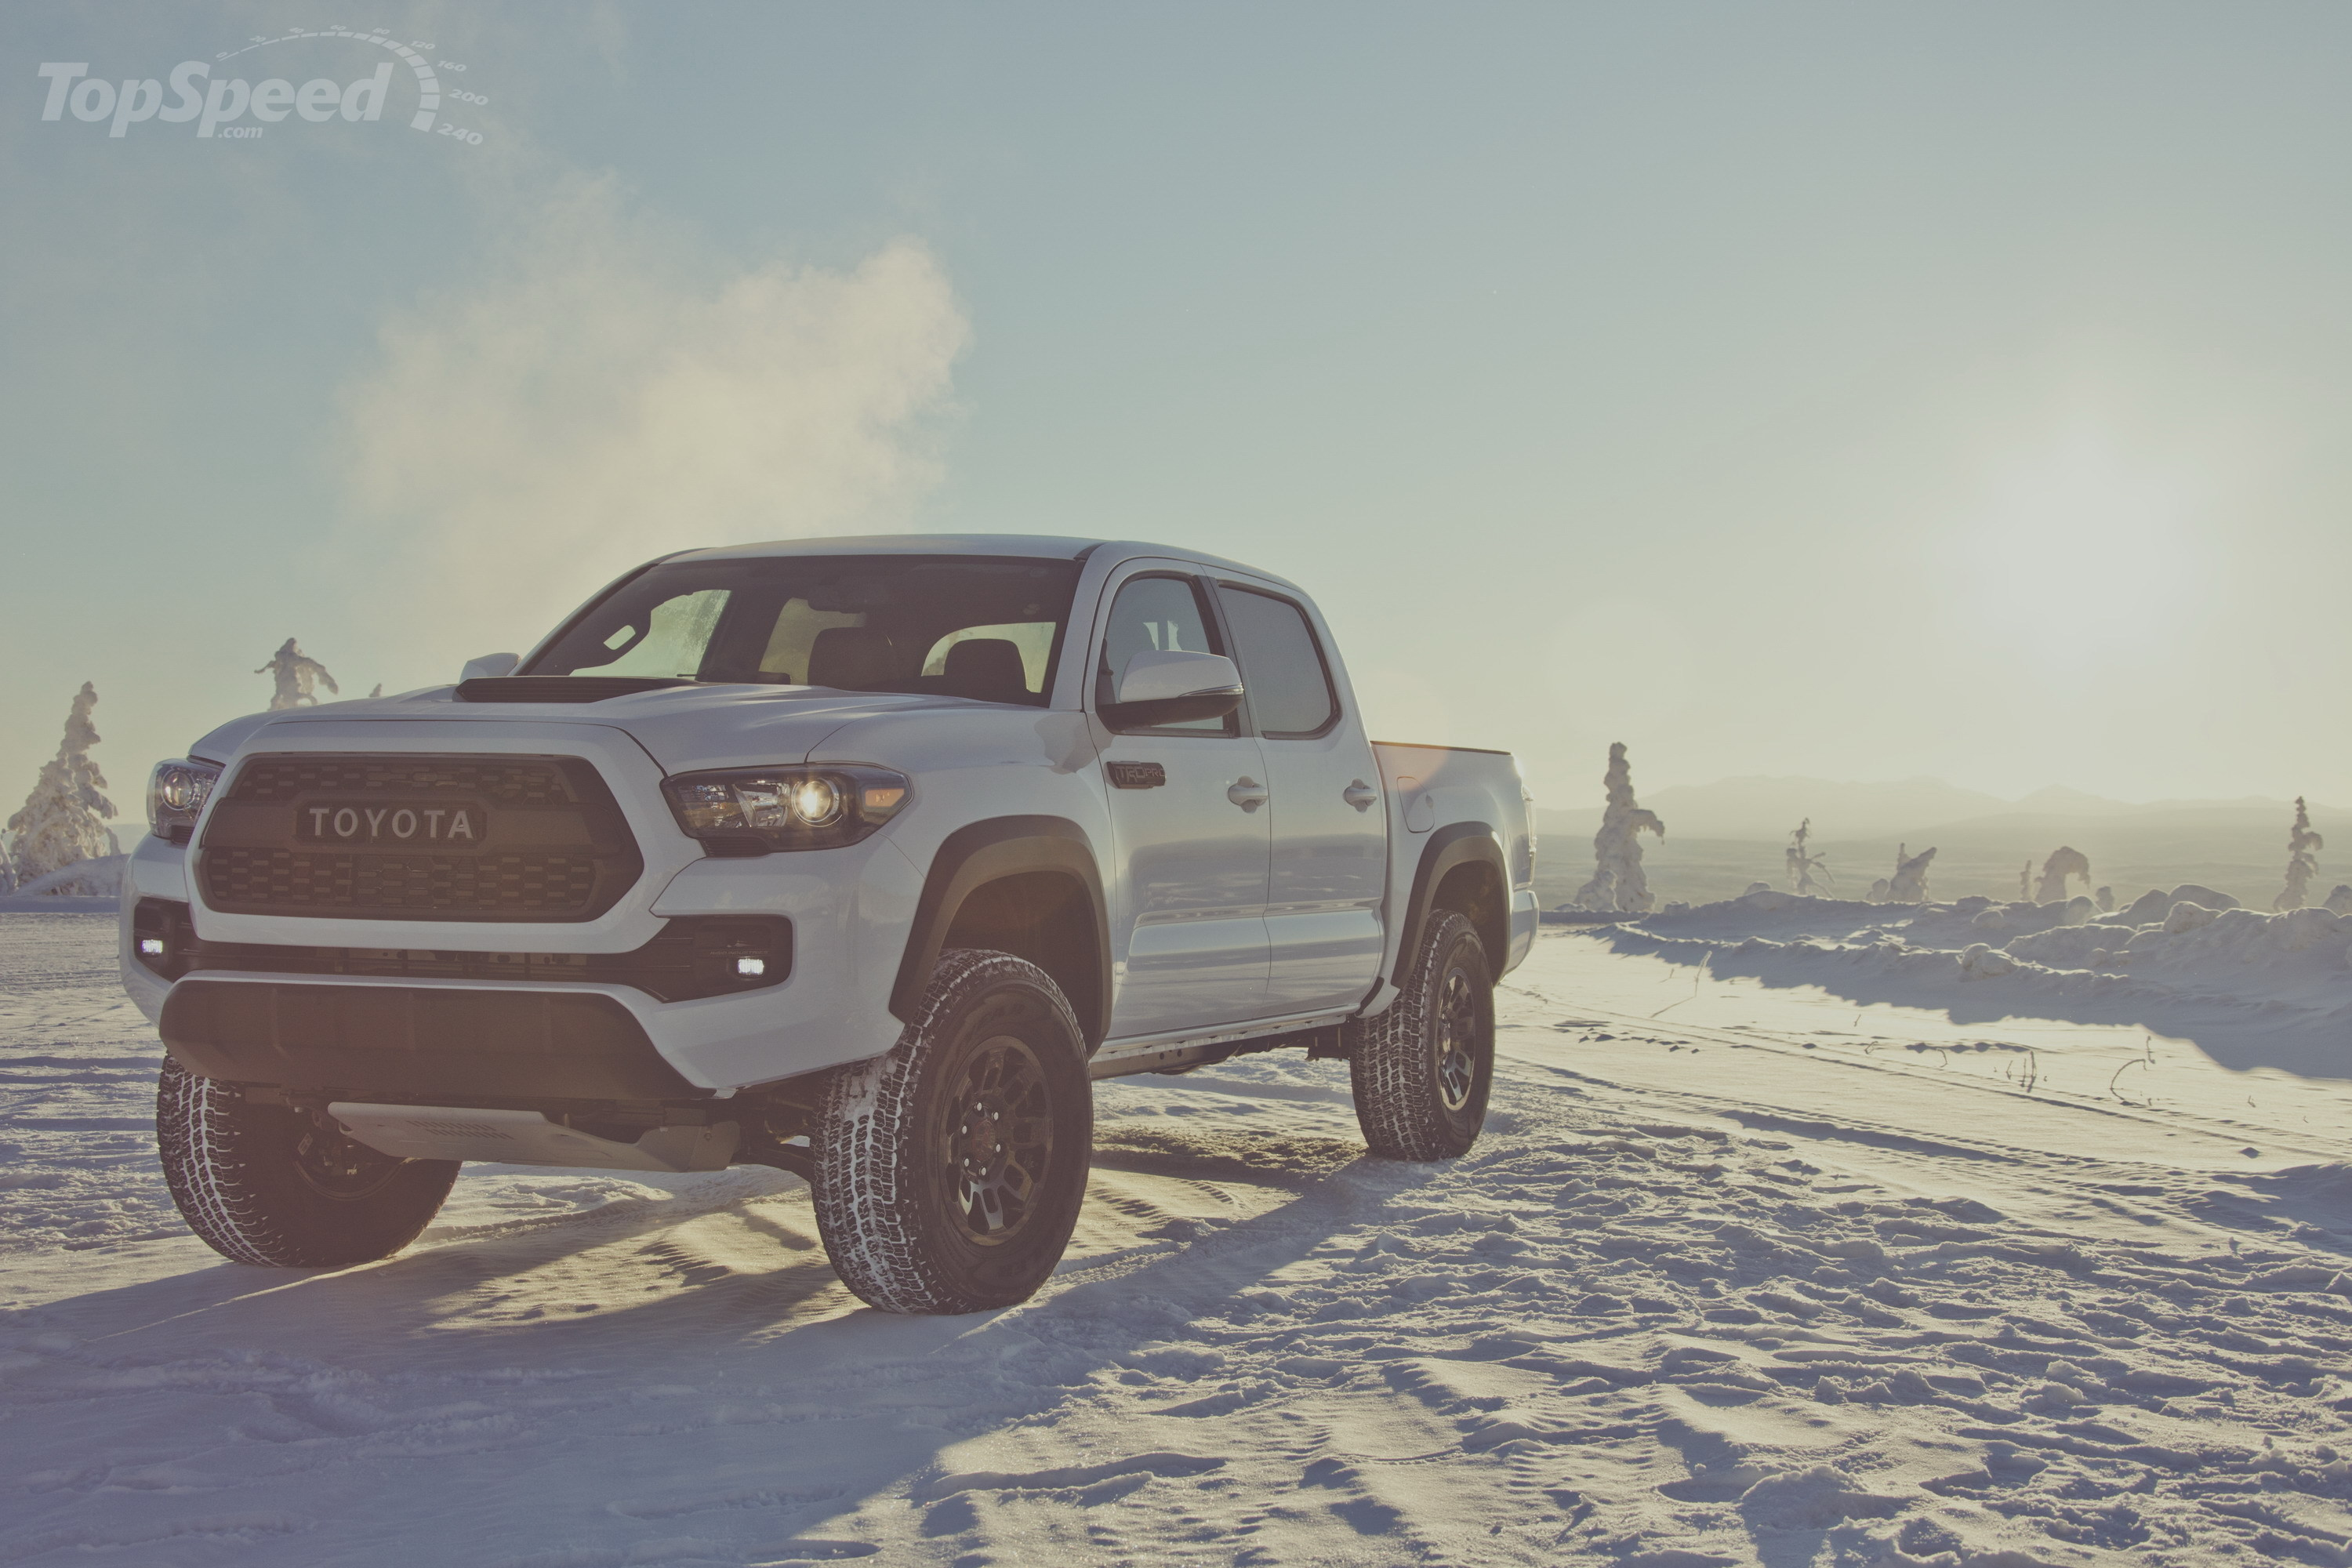 2017 toyota tacoma trd pro picture 665226 truck review top speed. Black Bedroom Furniture Sets. Home Design Ideas